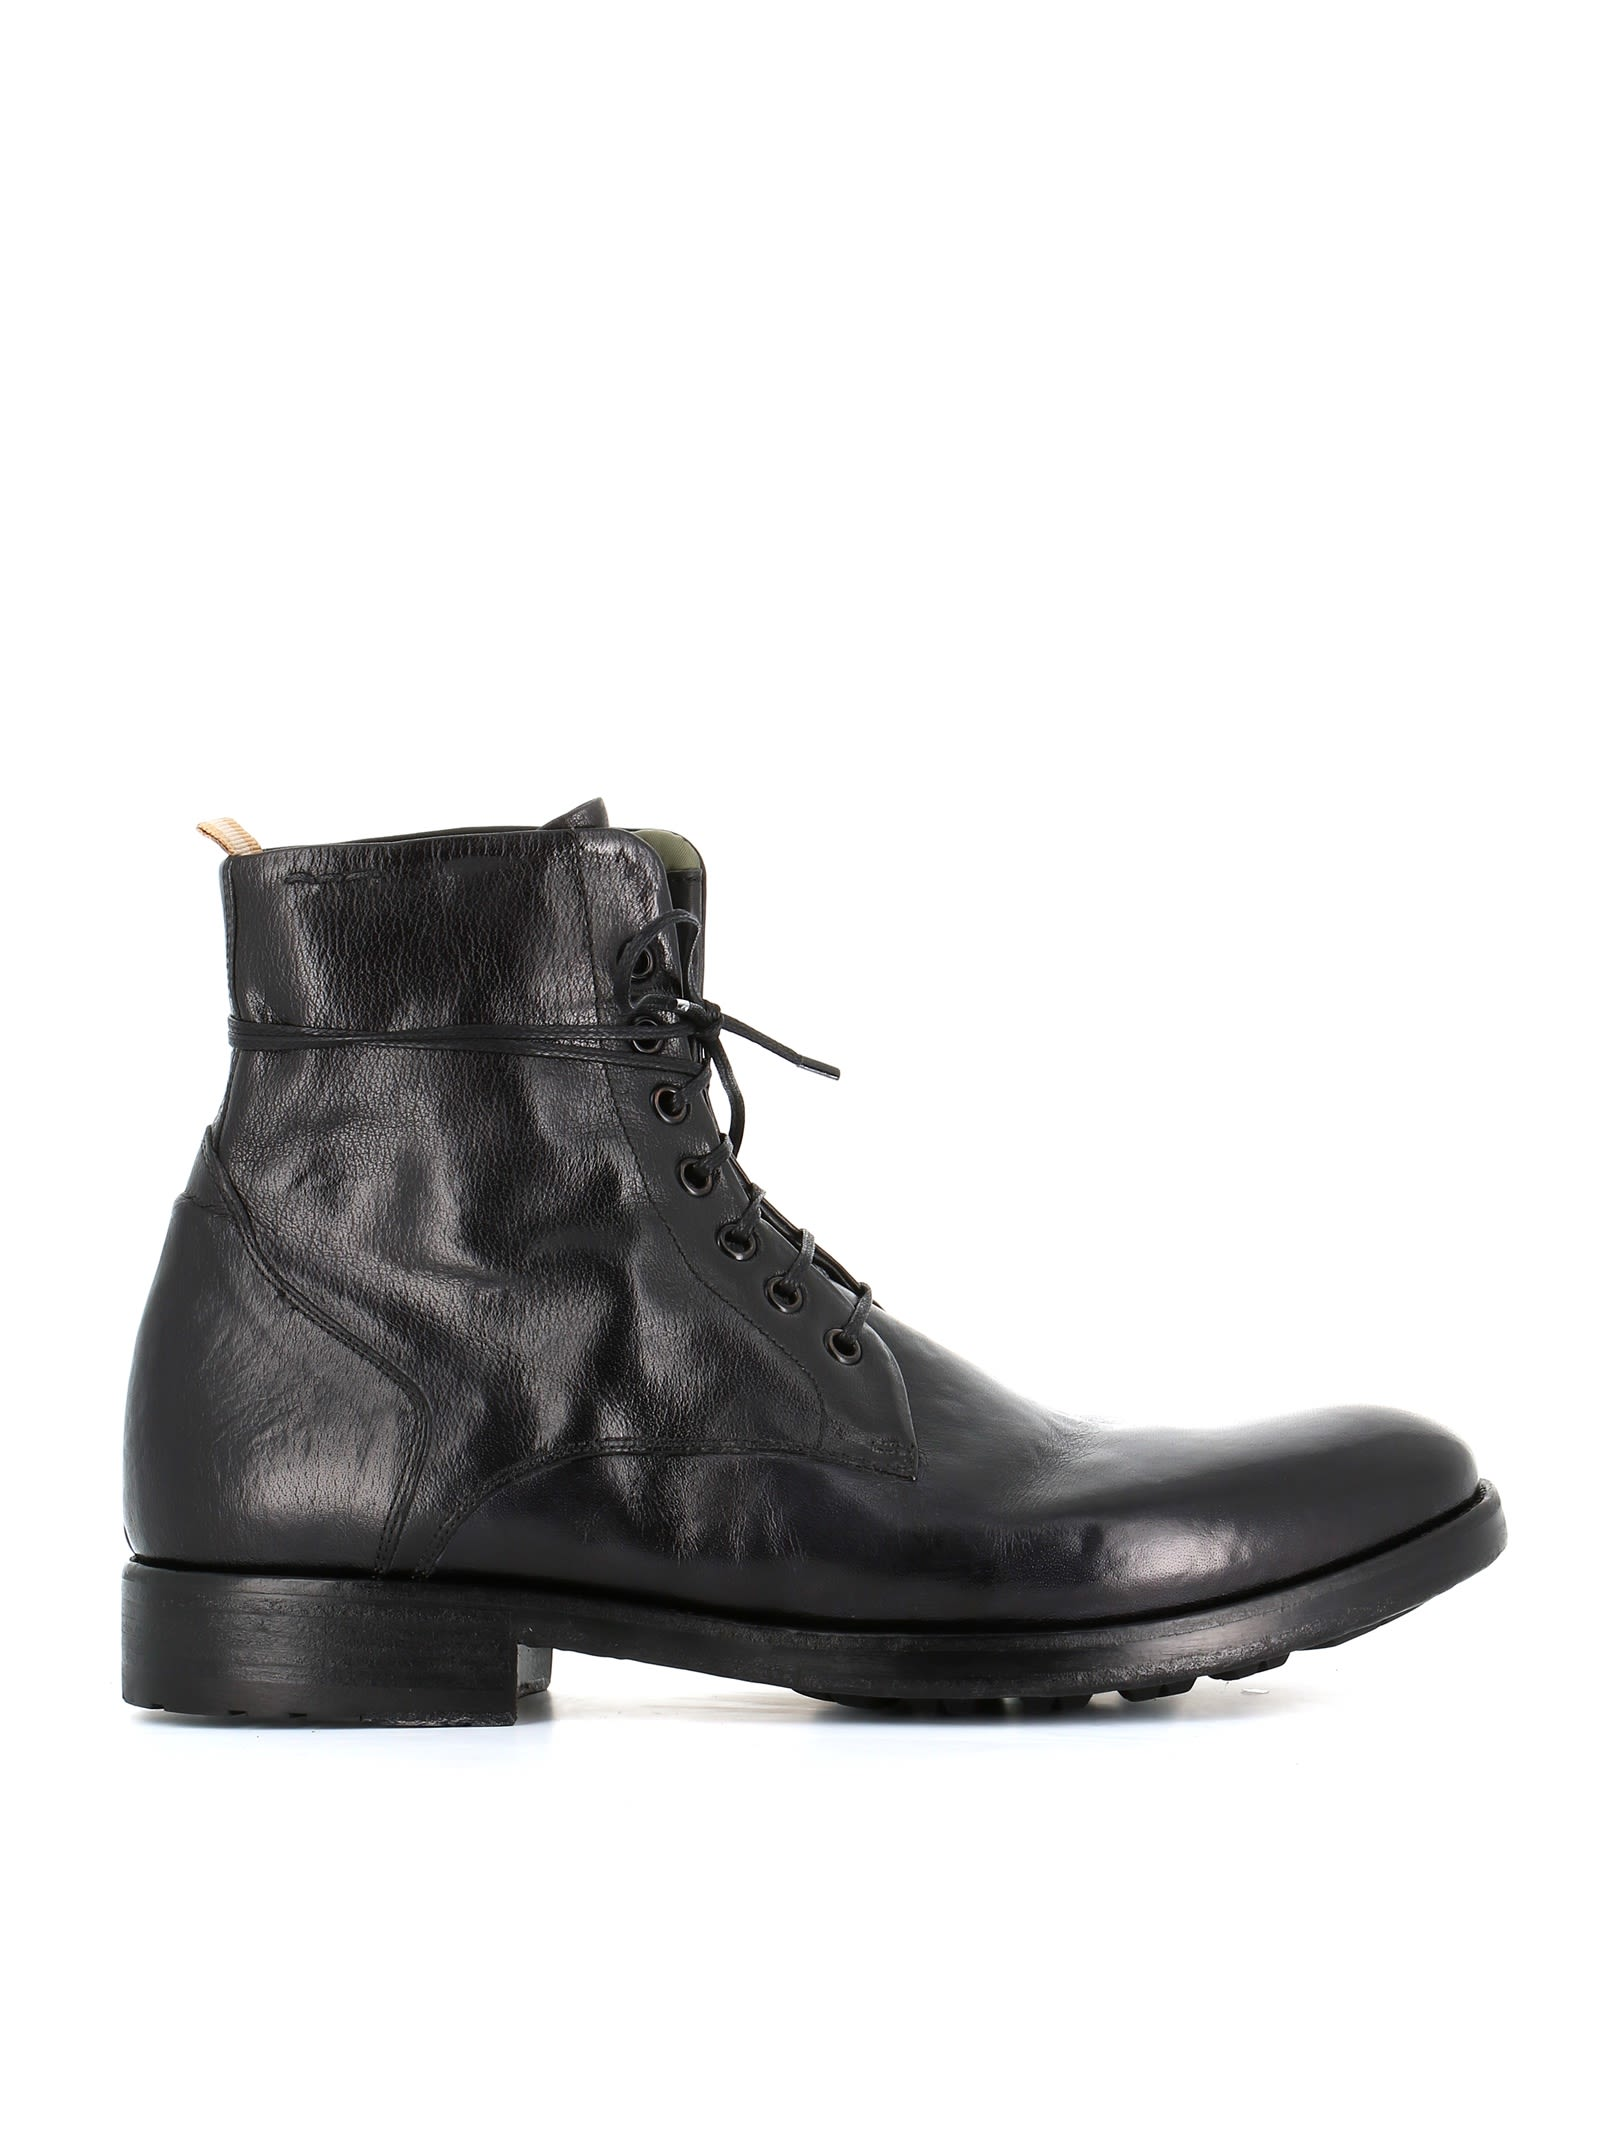 """ALEXANDER HOTTO Lace-Up Boot """"54064"""" in Black"""